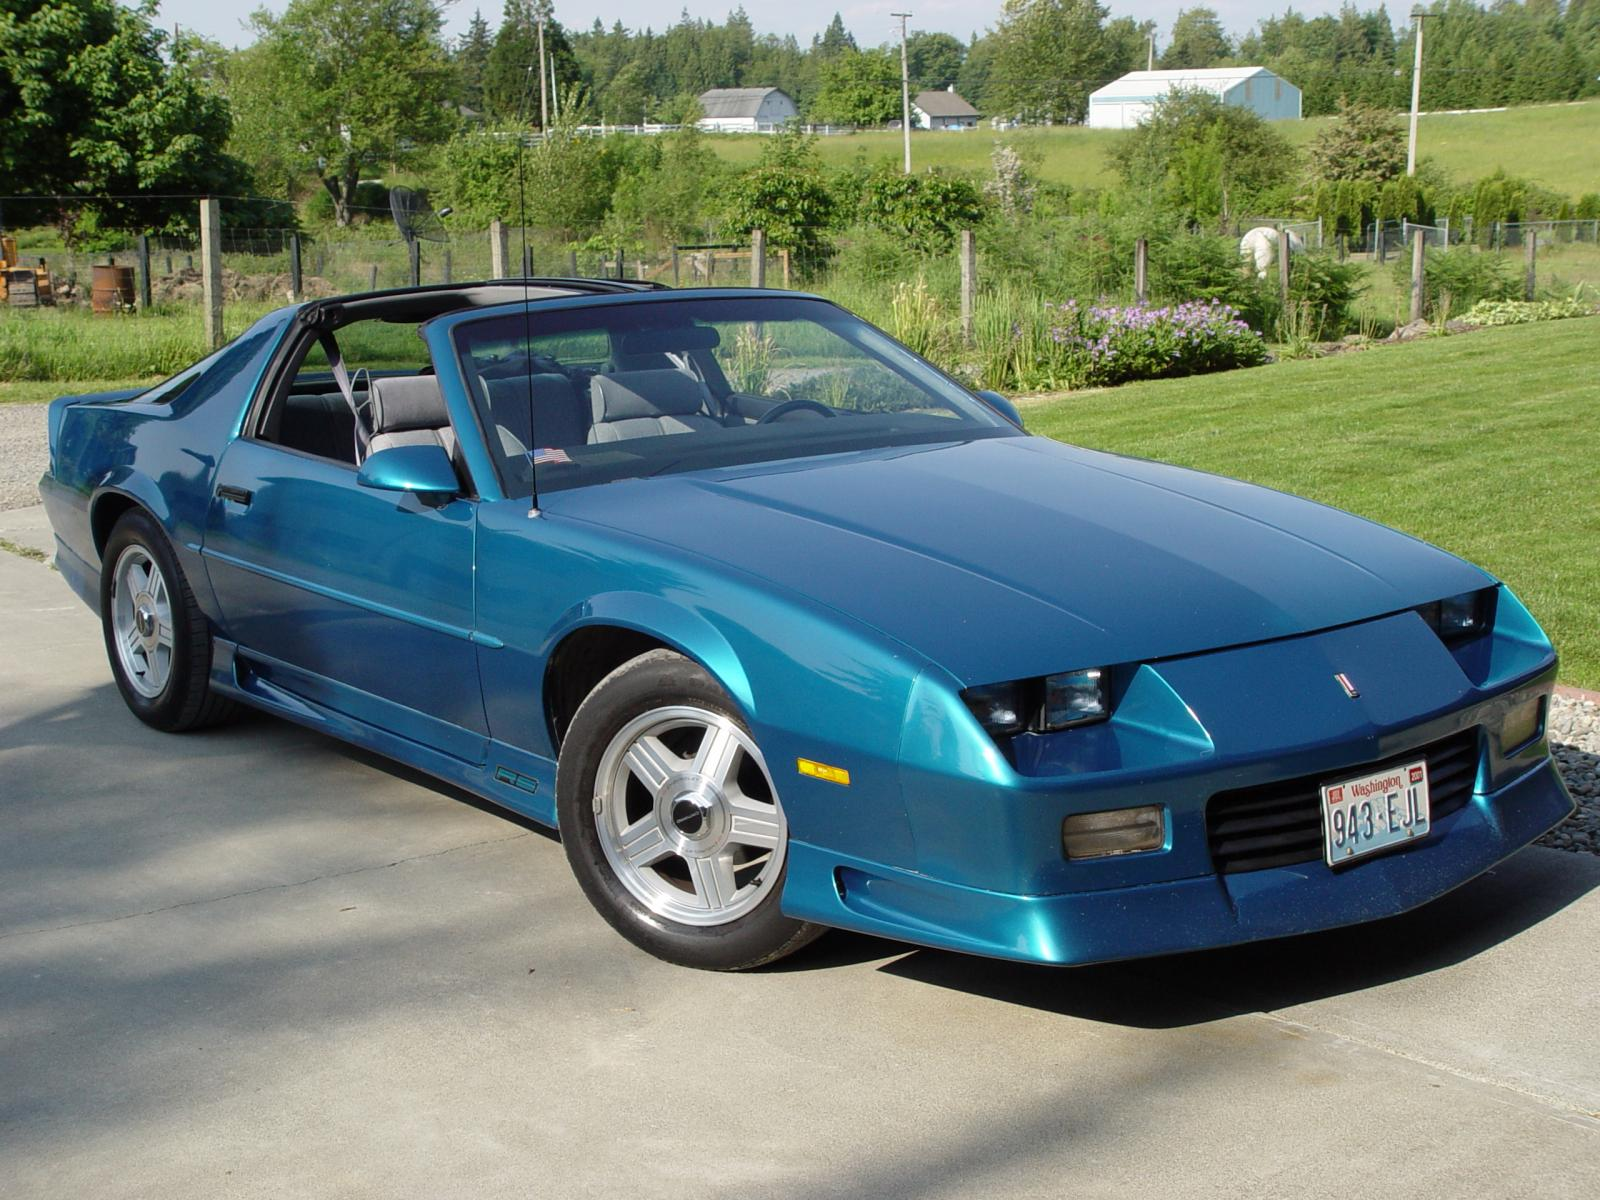 Ouderwetse Prullenbak 1992 Chevrolet Camaro Information And Photos Zombiedrive